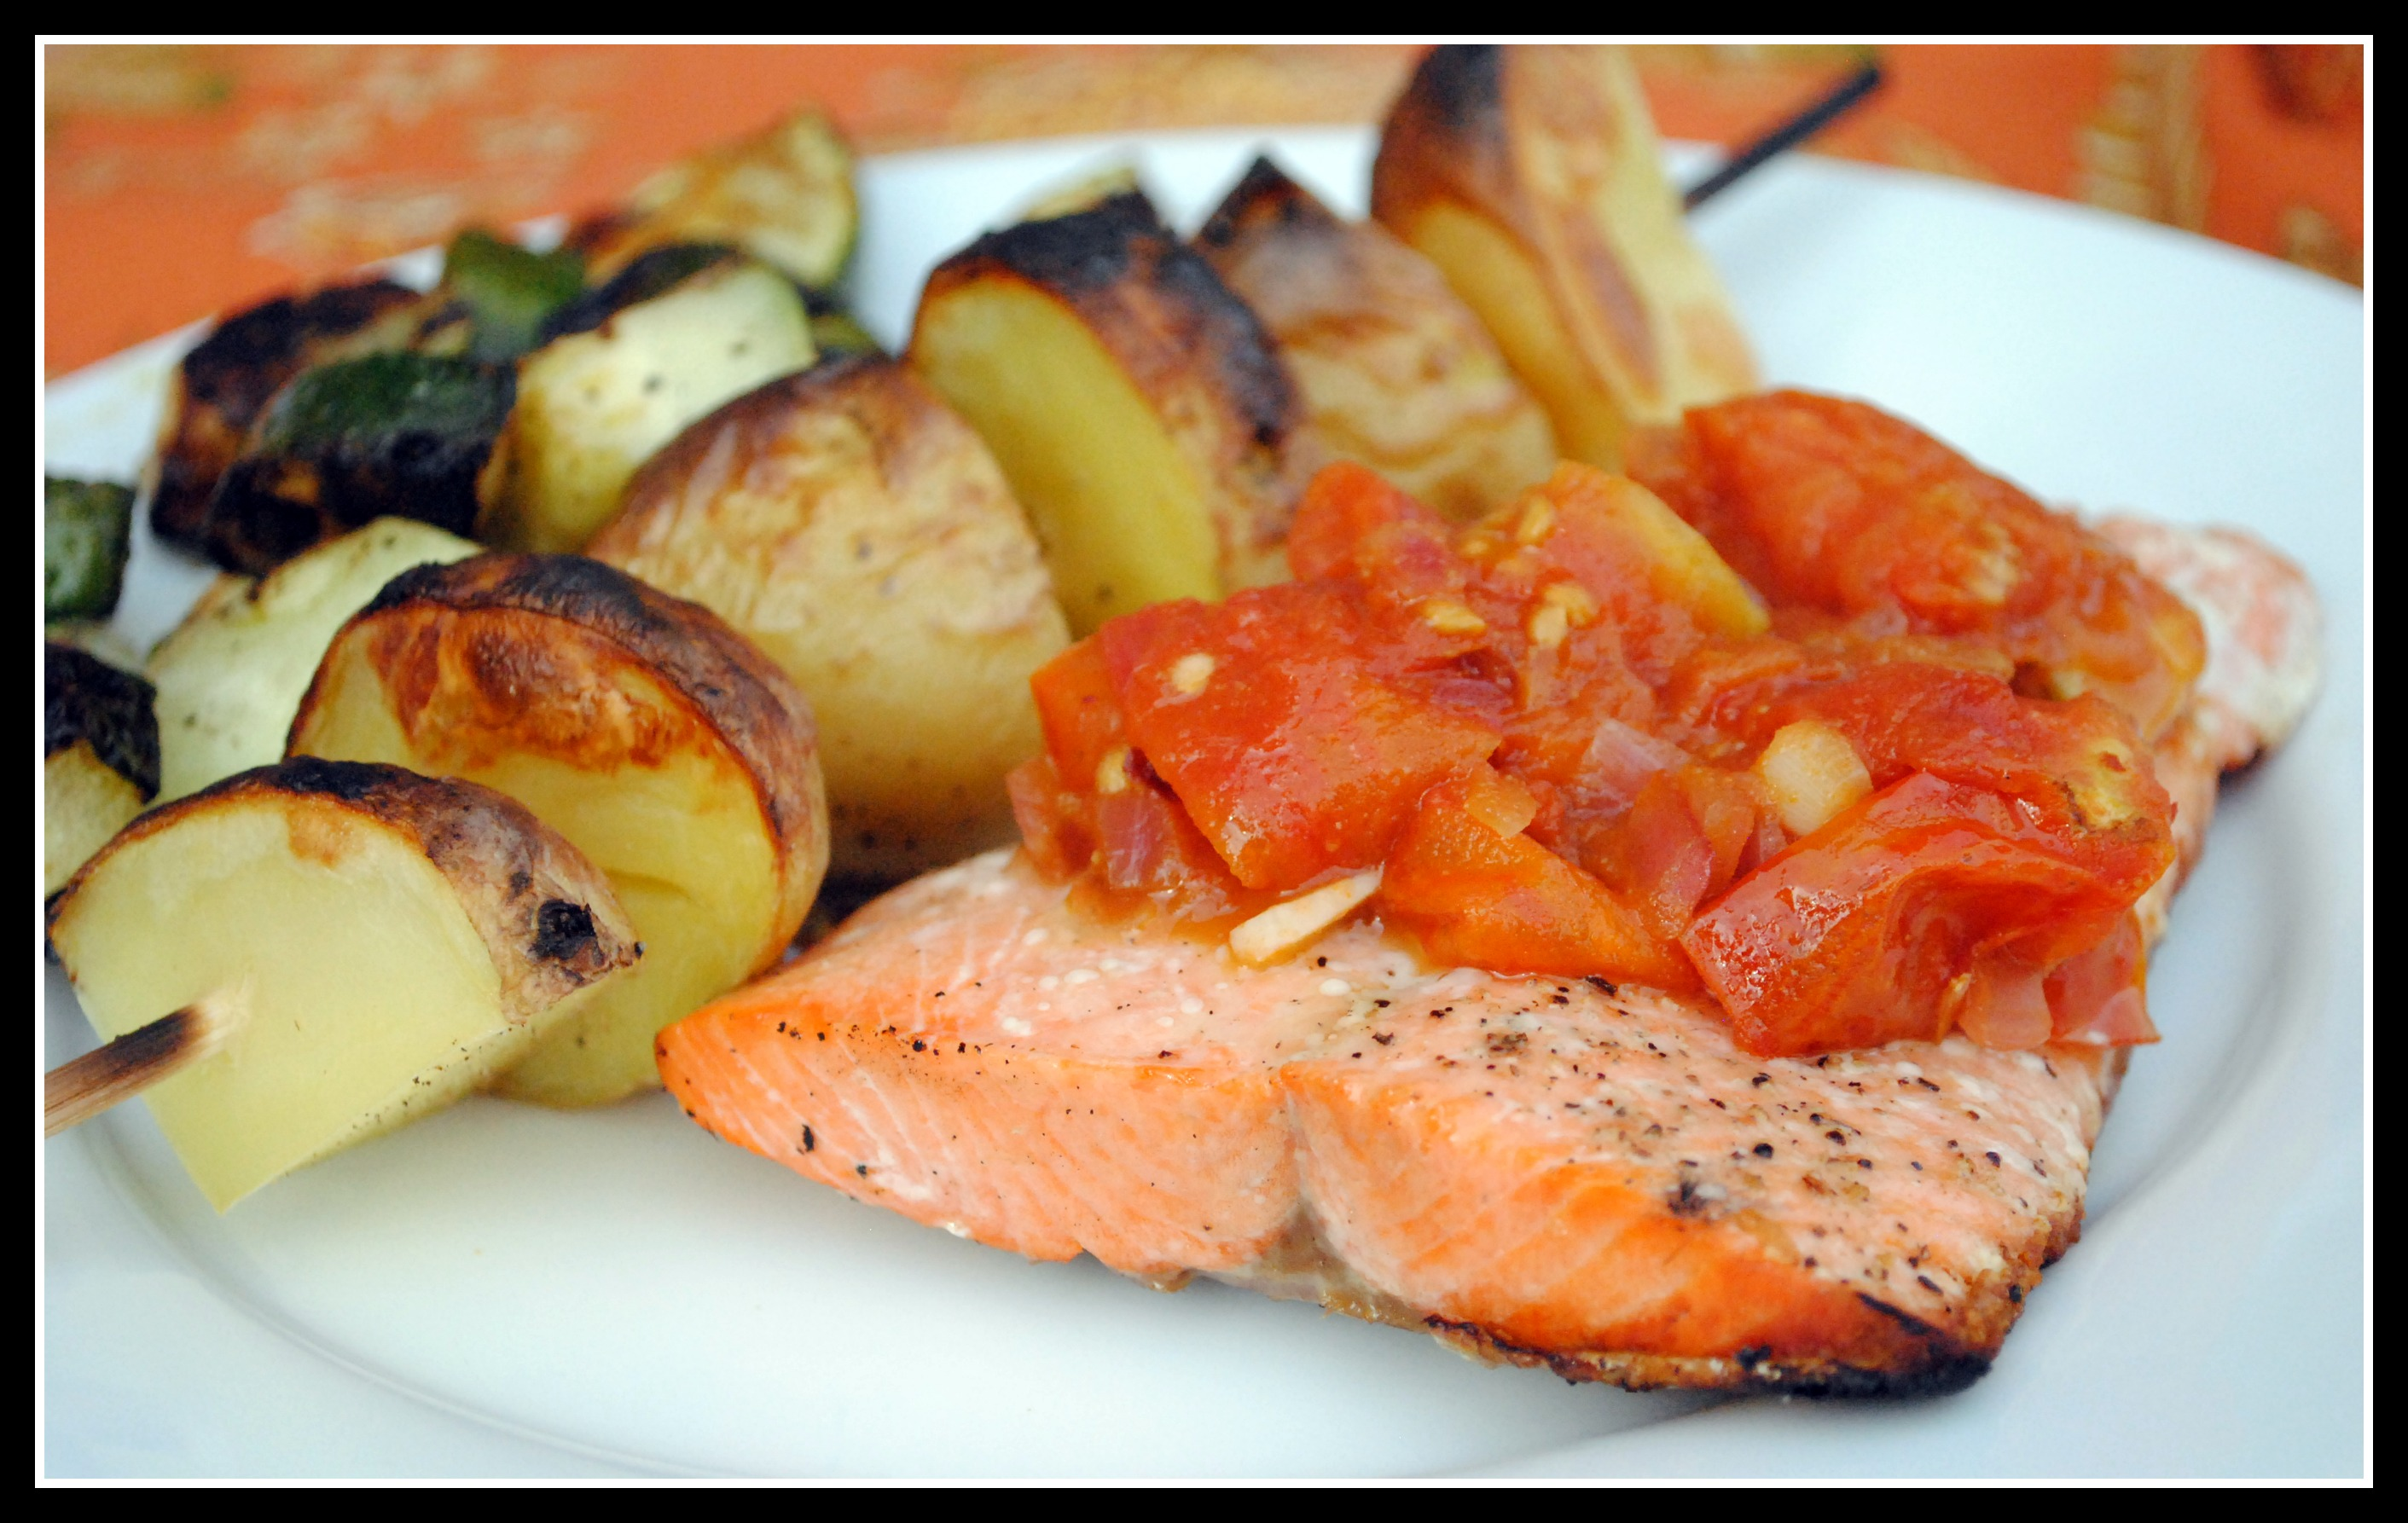 Grilled Salmon and Potatoes with Quick Tomato Chutney